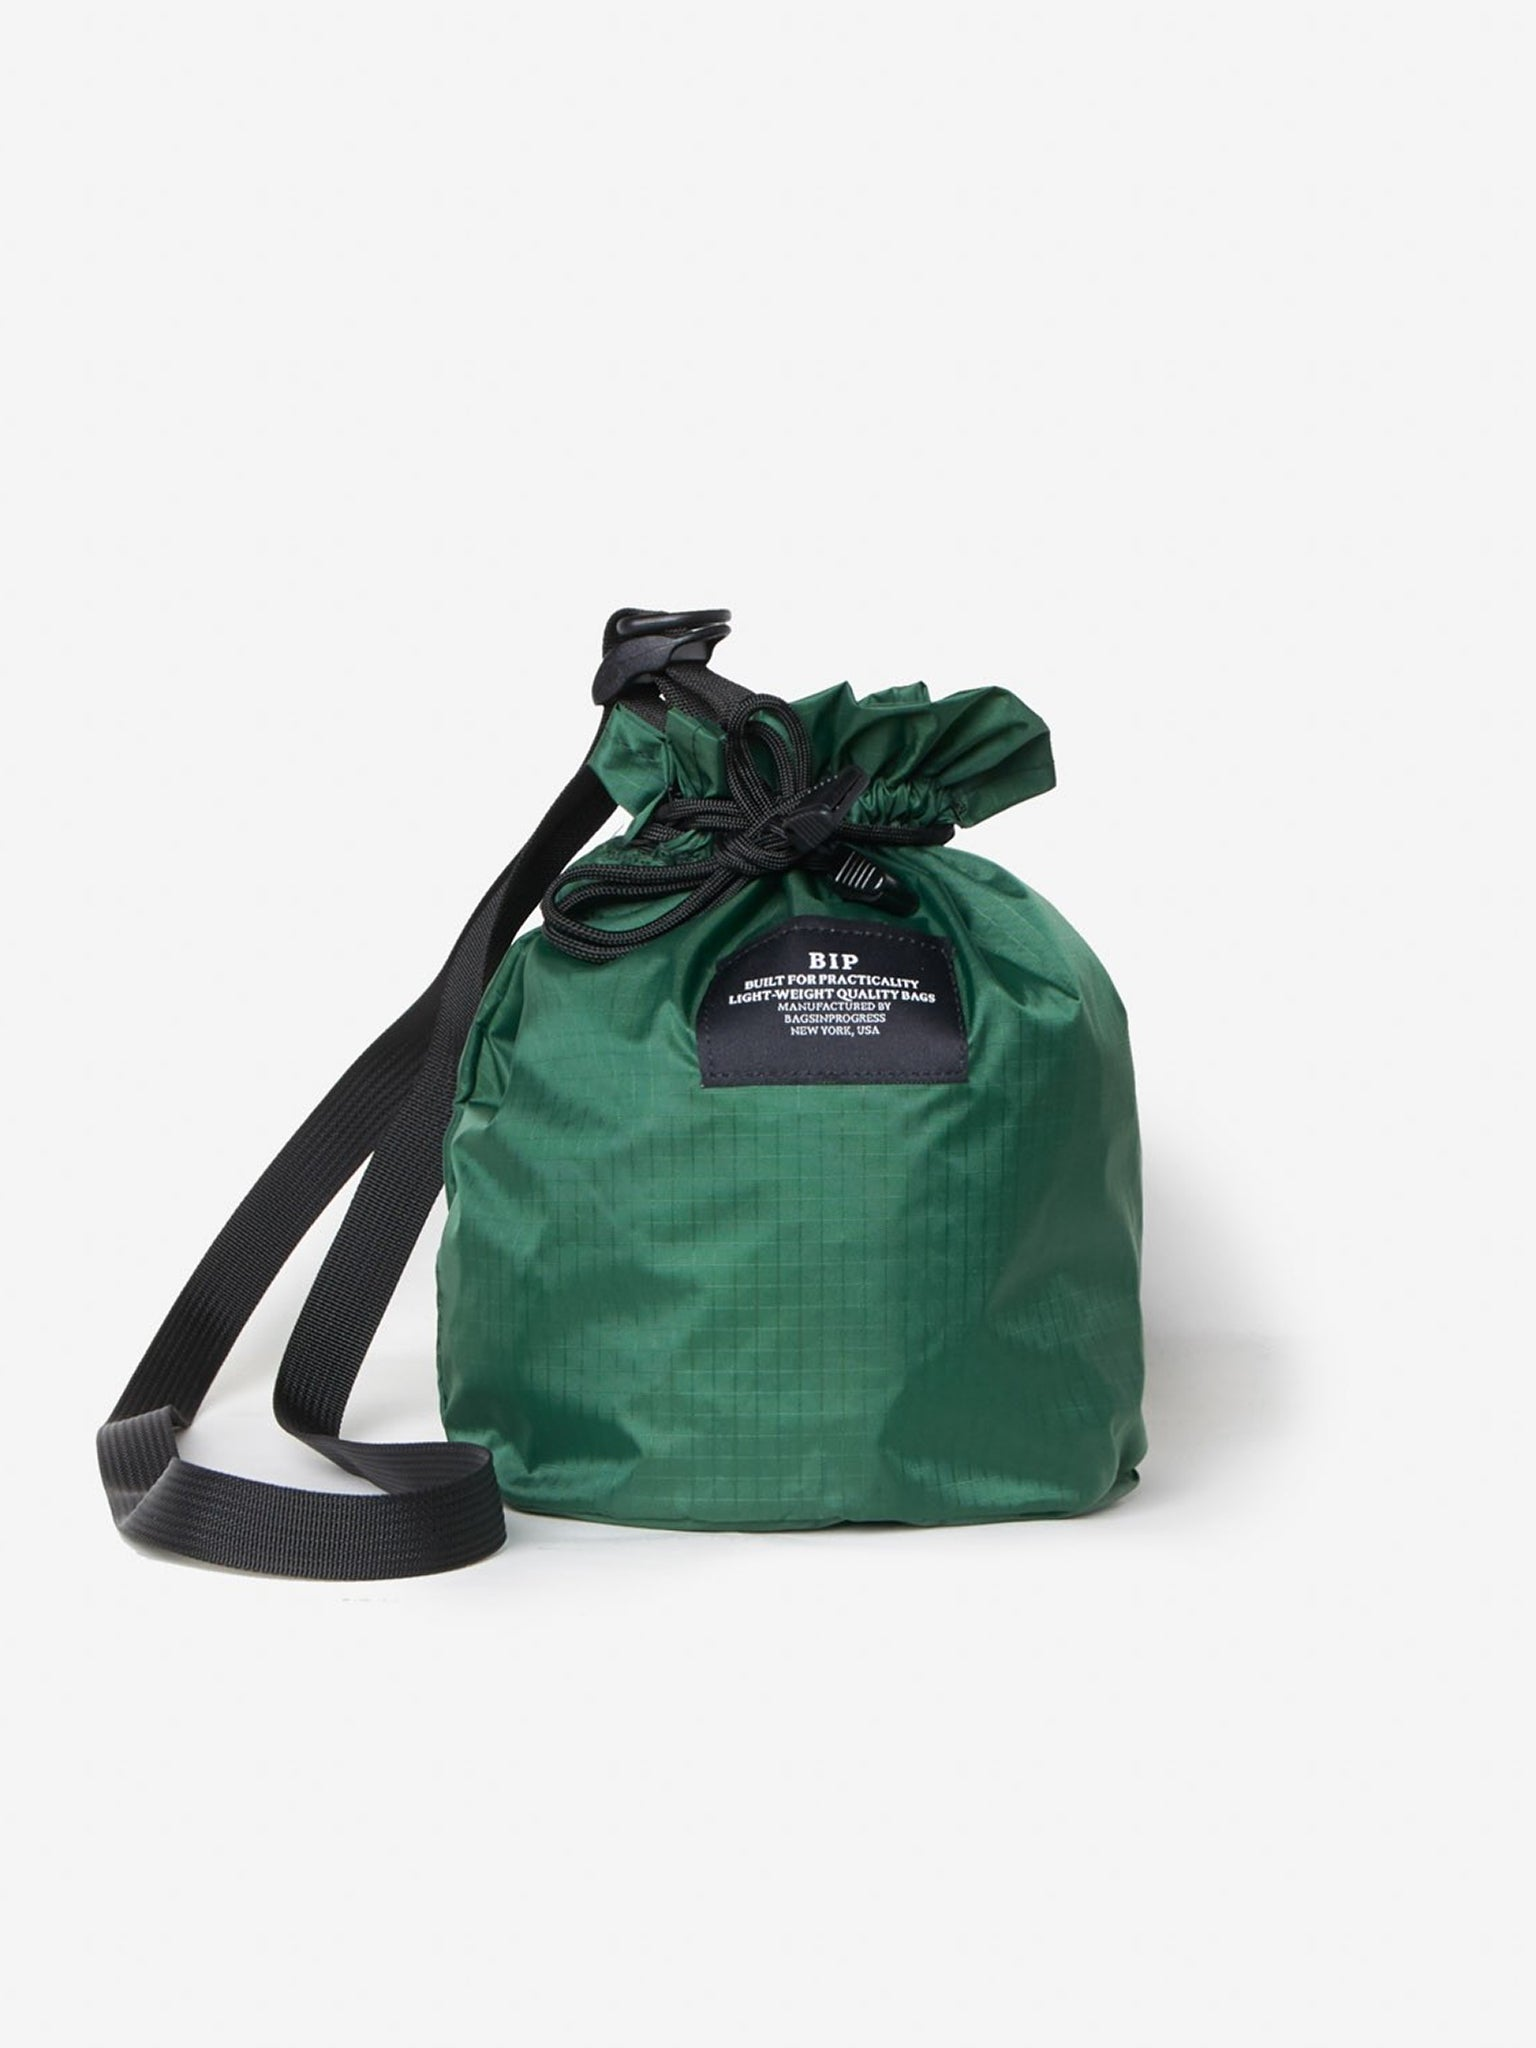 Mini shoulder bag, dark green